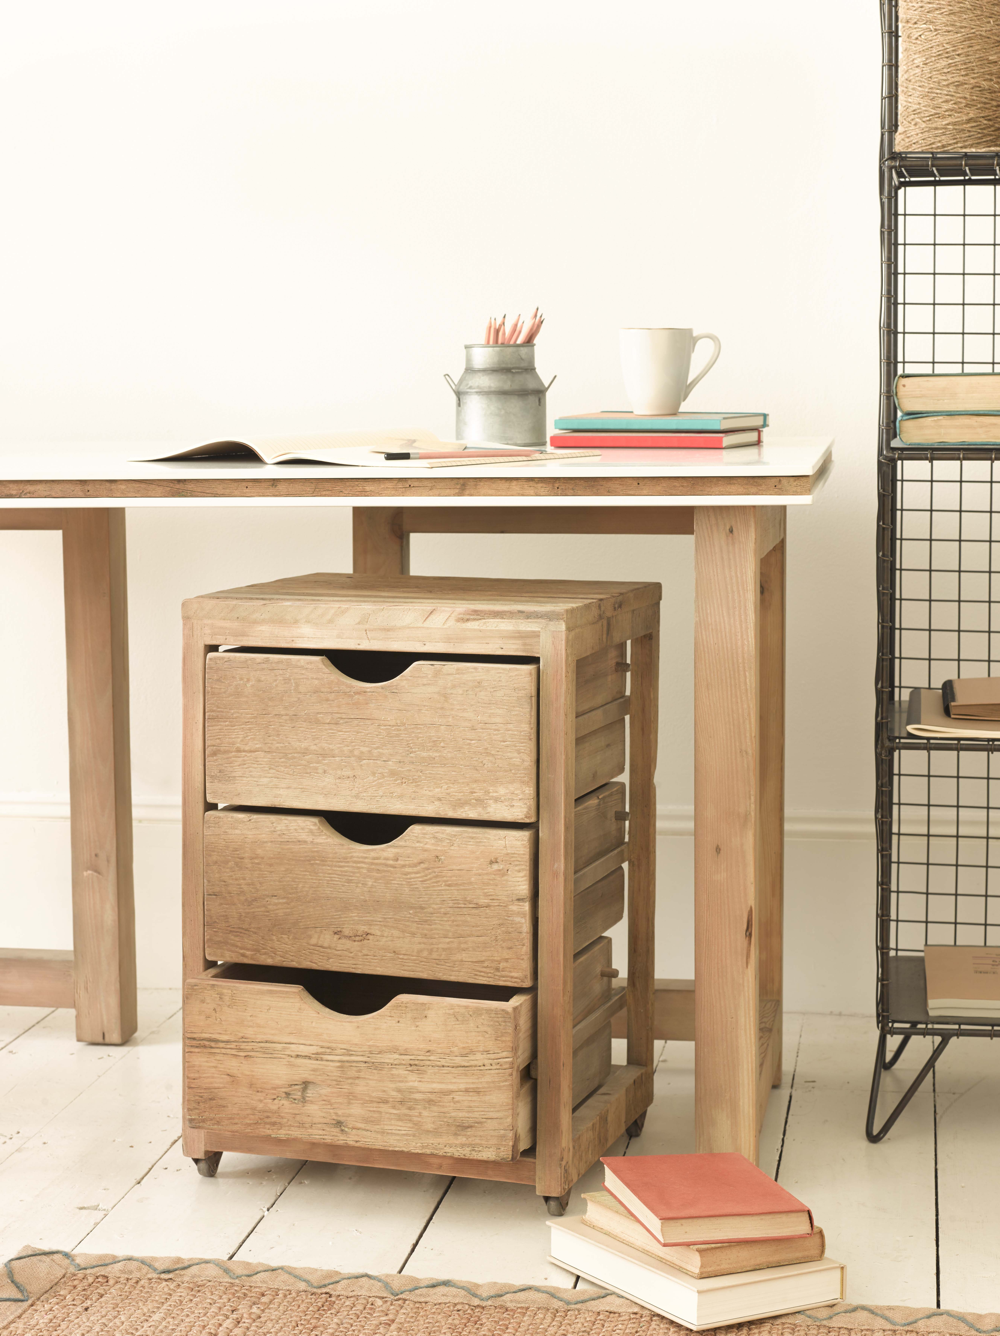 Rolly drawer unit from Loaf, hand crafted wooden draws made in distressed fir. Lovely rustic deconstructed style.